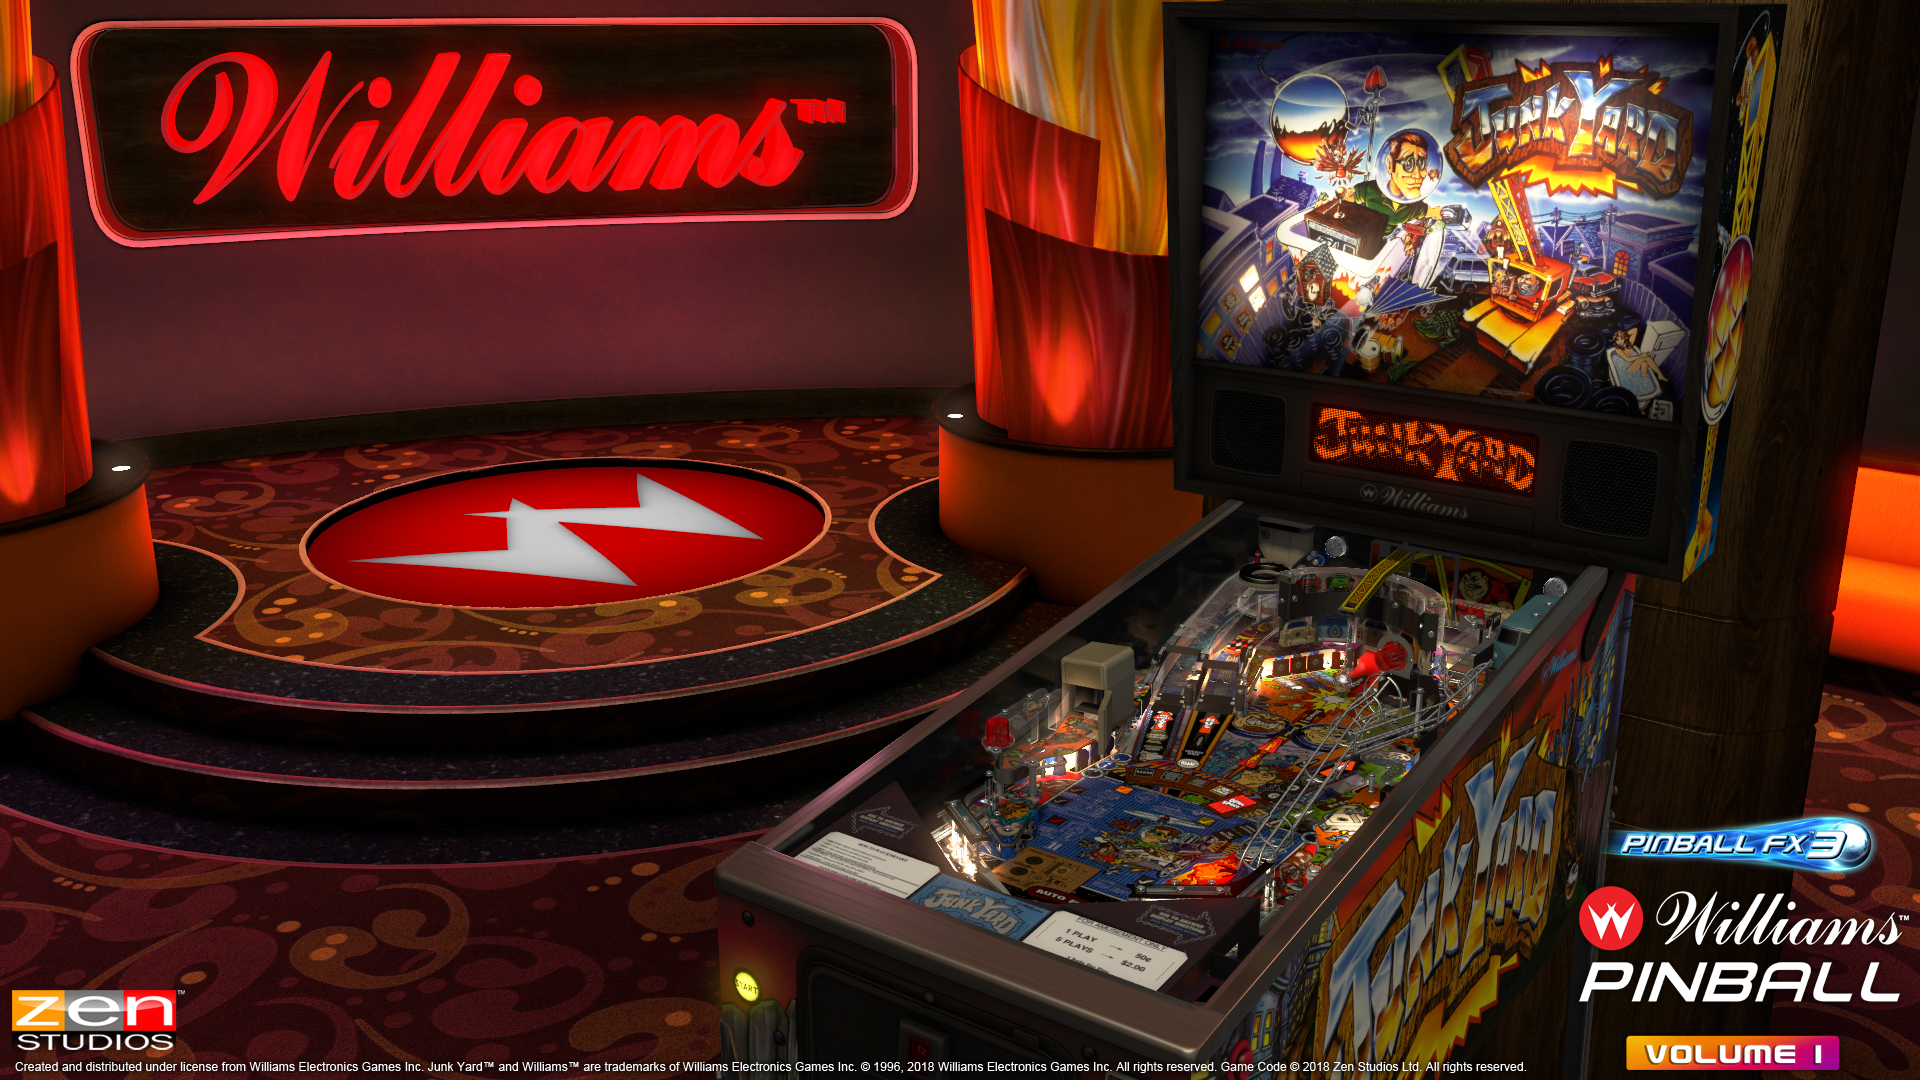 Zen Studios Has Licensed the Bally-Williams Pinball Library